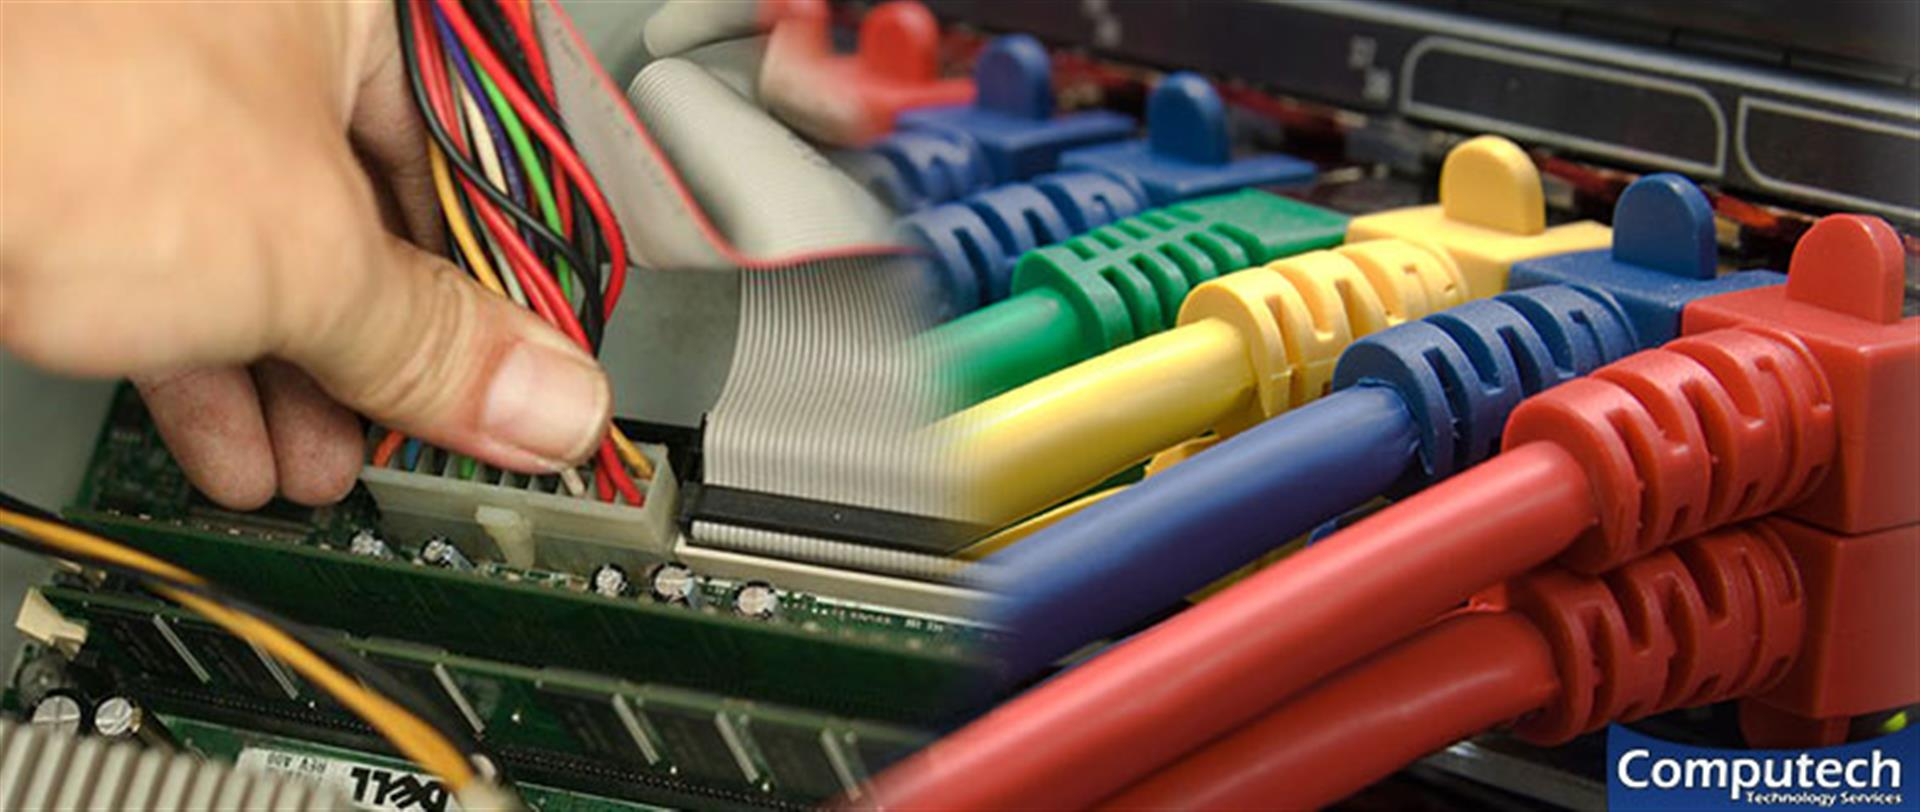 Lynchburg Virginia Onsite Computer & Printer Repair, Networks, Voice & Data Cabling Services